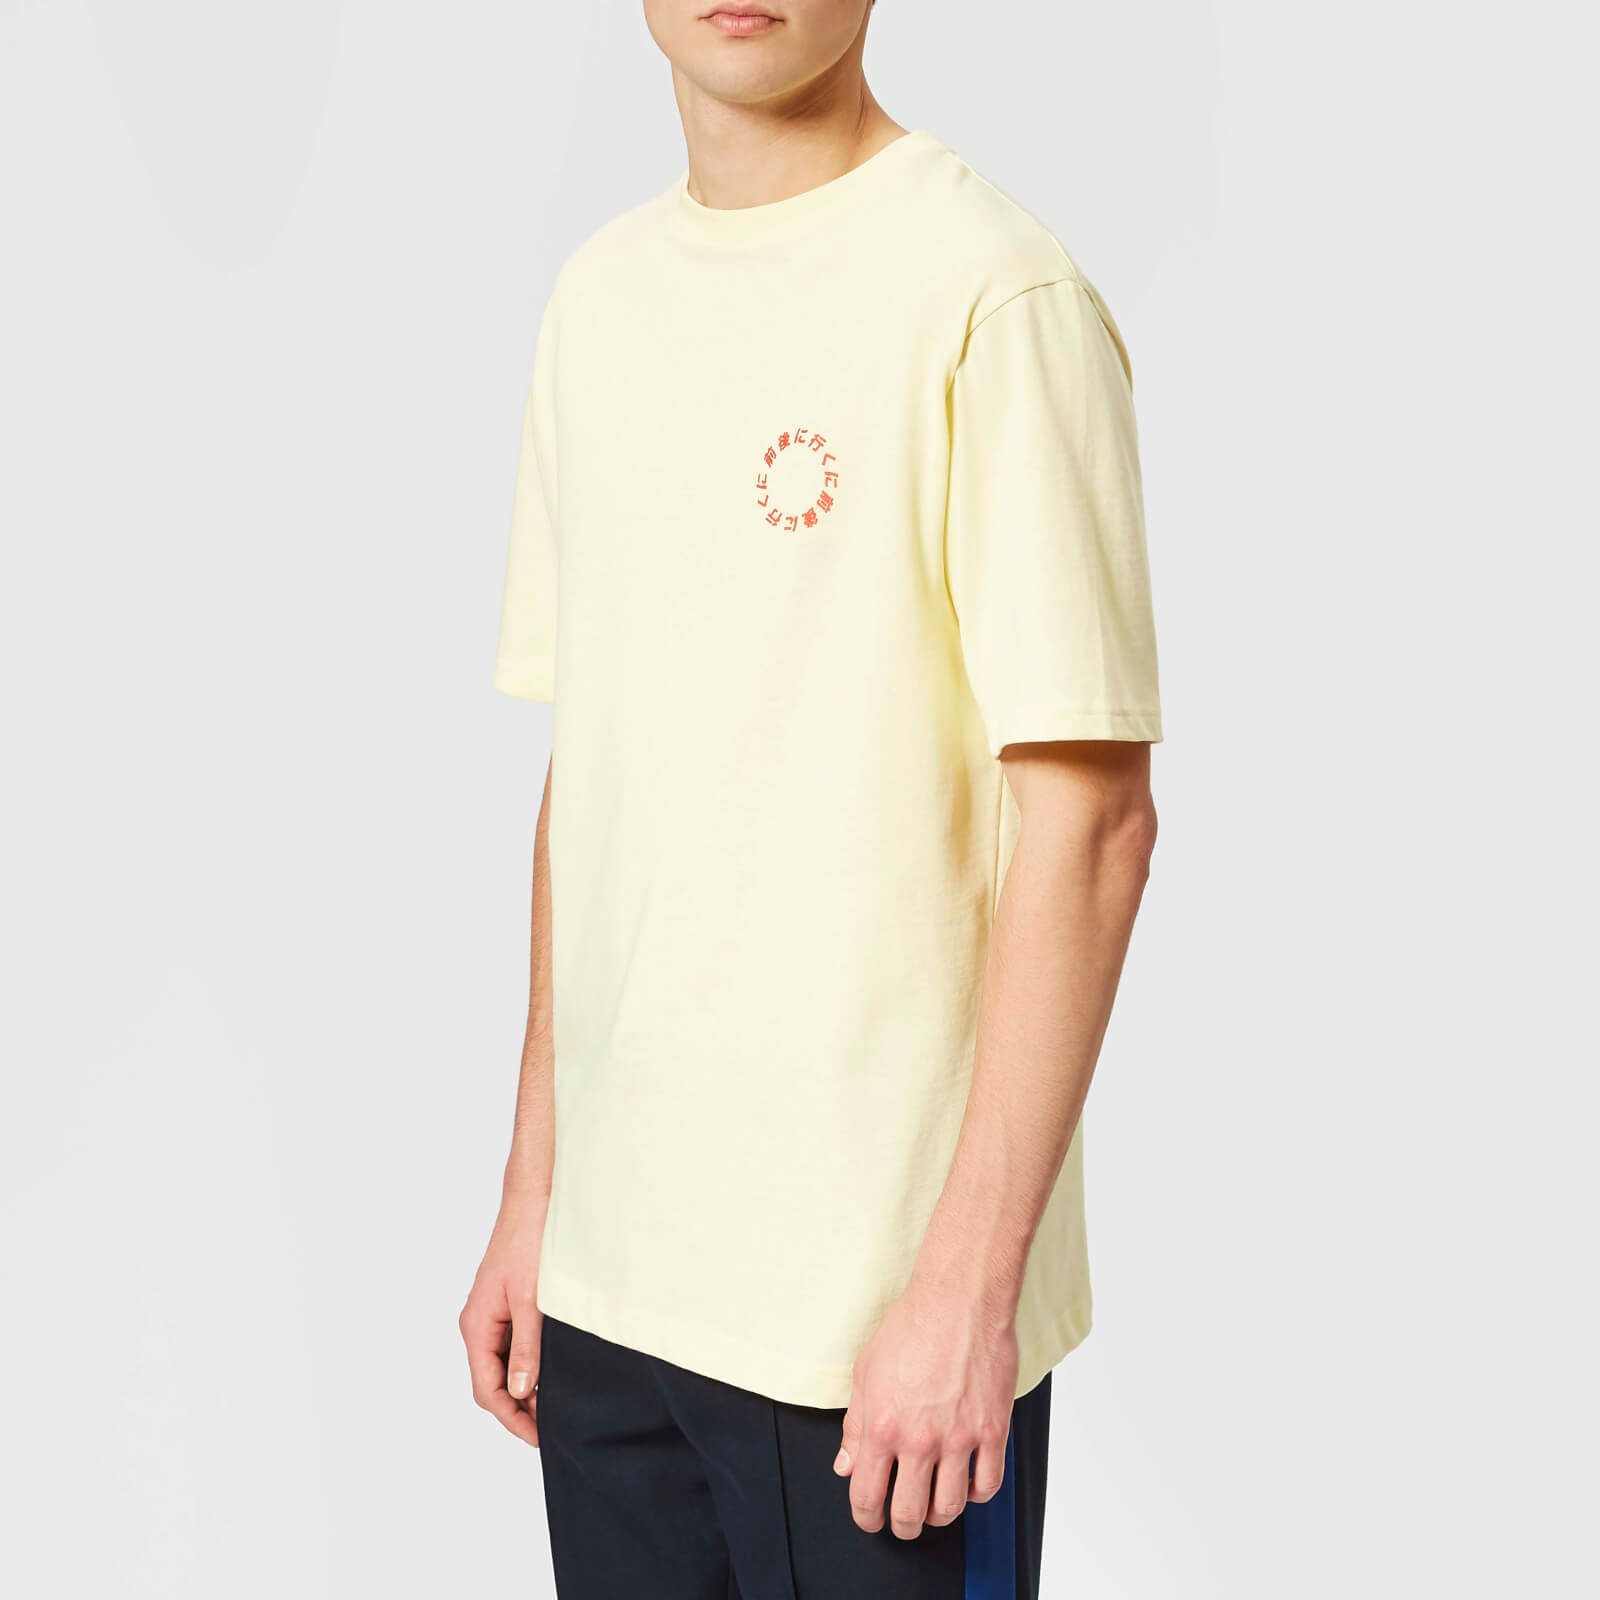 e8ab29e8570ee Axel Arigato Men's Japanese Circle Graphic T-Shirt - Pale Yellow - Free UK  Delivery over £50